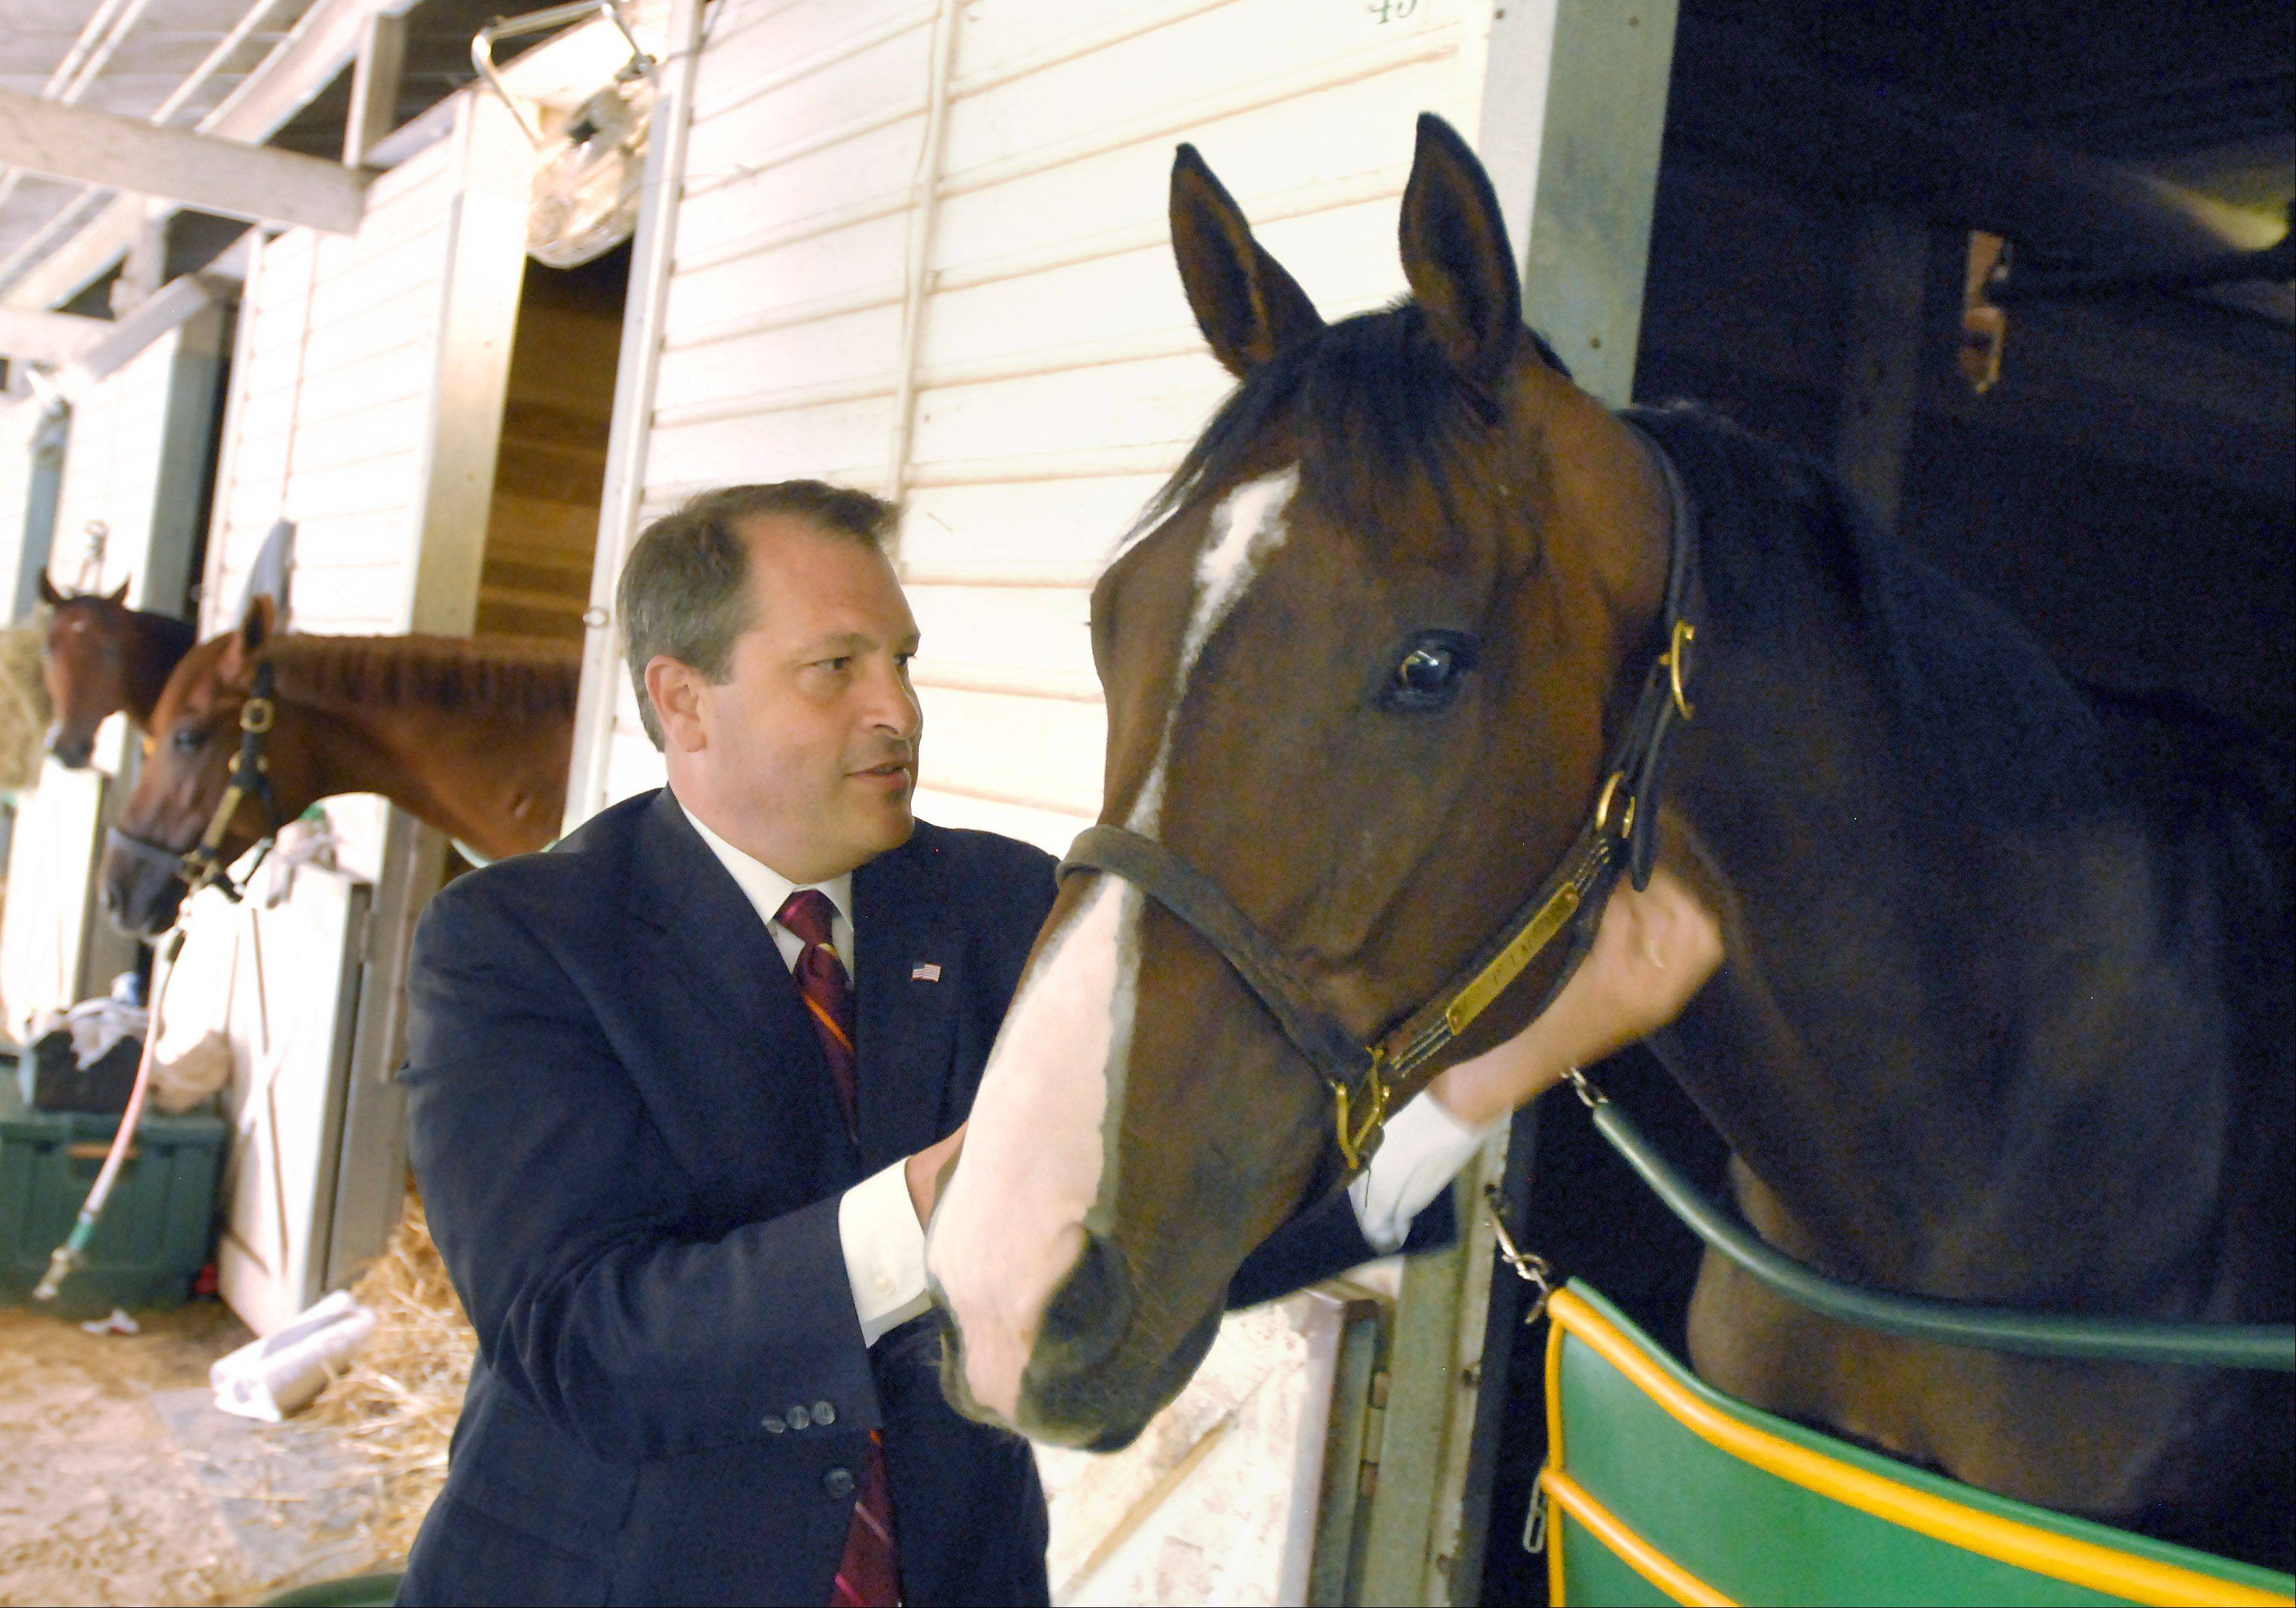 Arlington Park general manager Anthony Petrillo gets acquainted with Repenter owned by Apman Racing in Barrington.